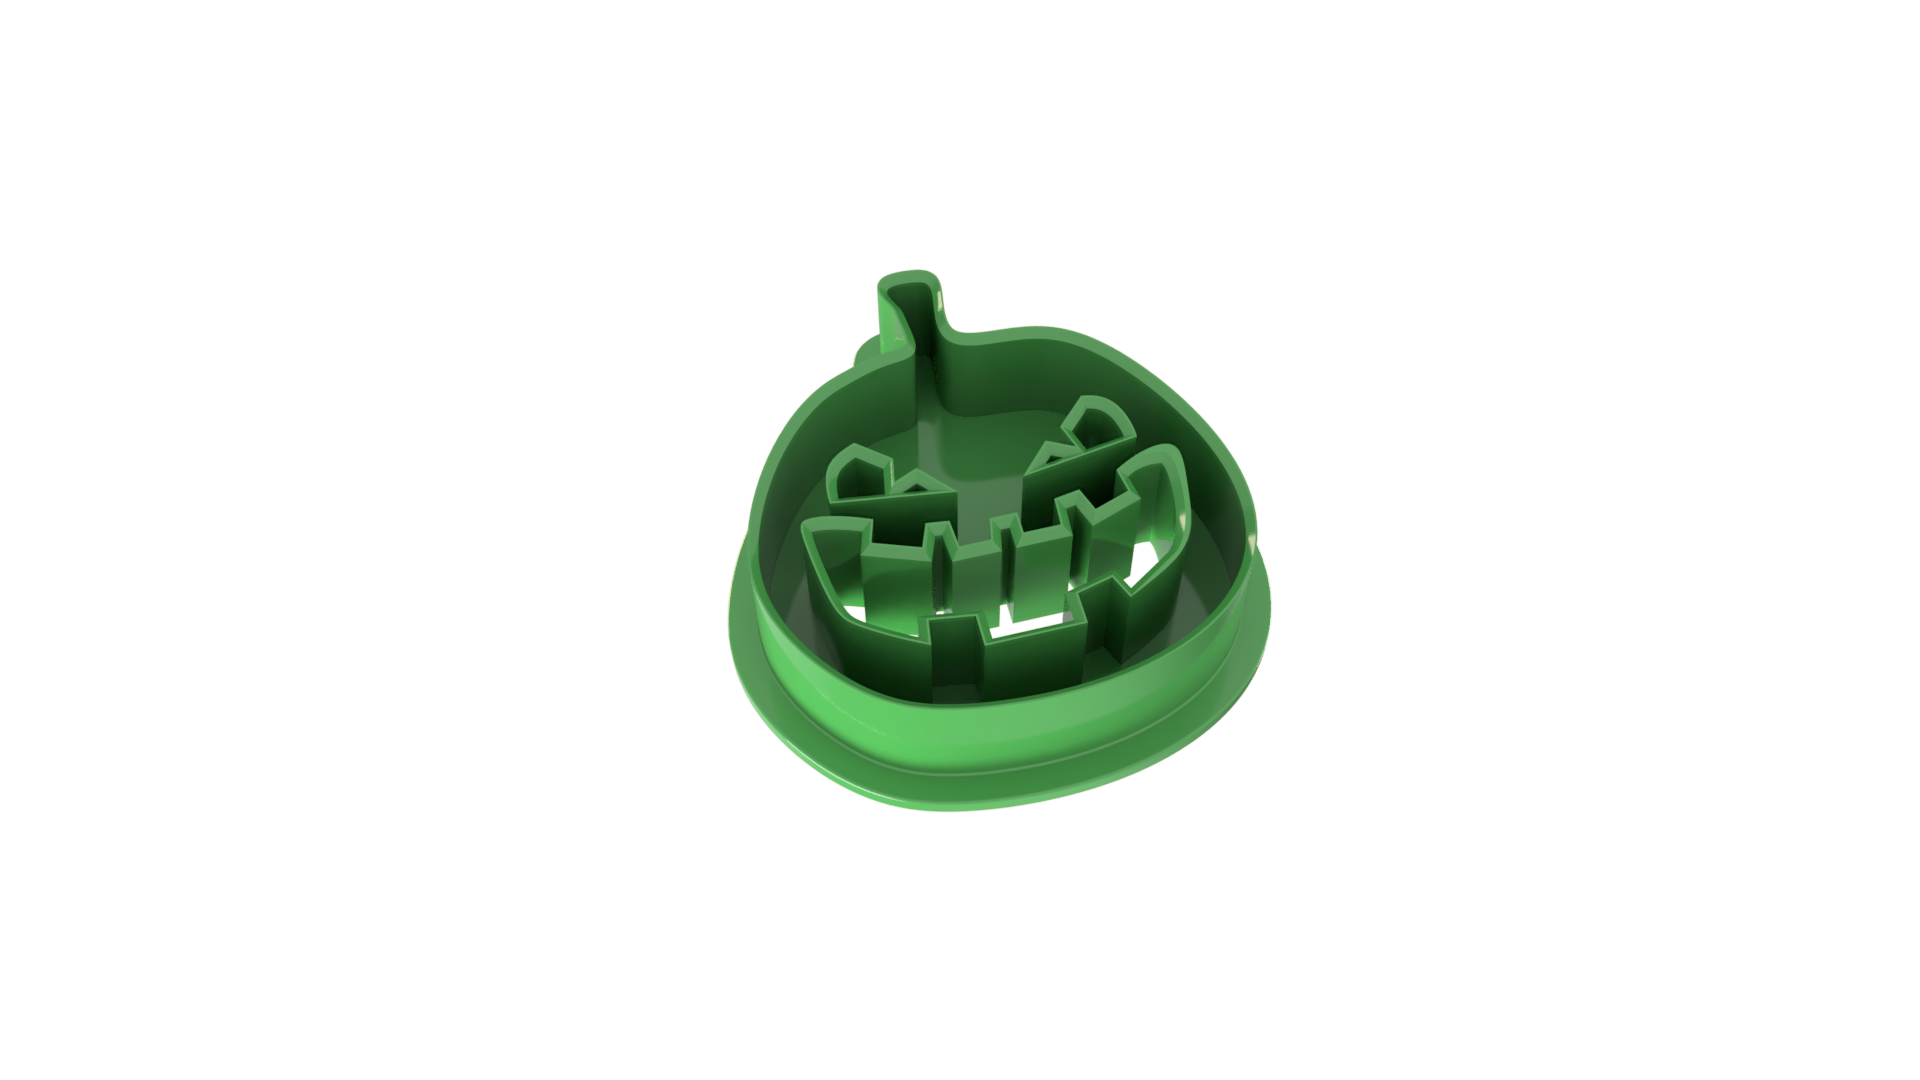 Halloween_cookie_cutter_2017-Oct-28_08-28-37PM-000_CustomizedView2701097123.png Download free STL file Halloween various Lantern Cookie Cutter • Design to 3D print, ZepTo